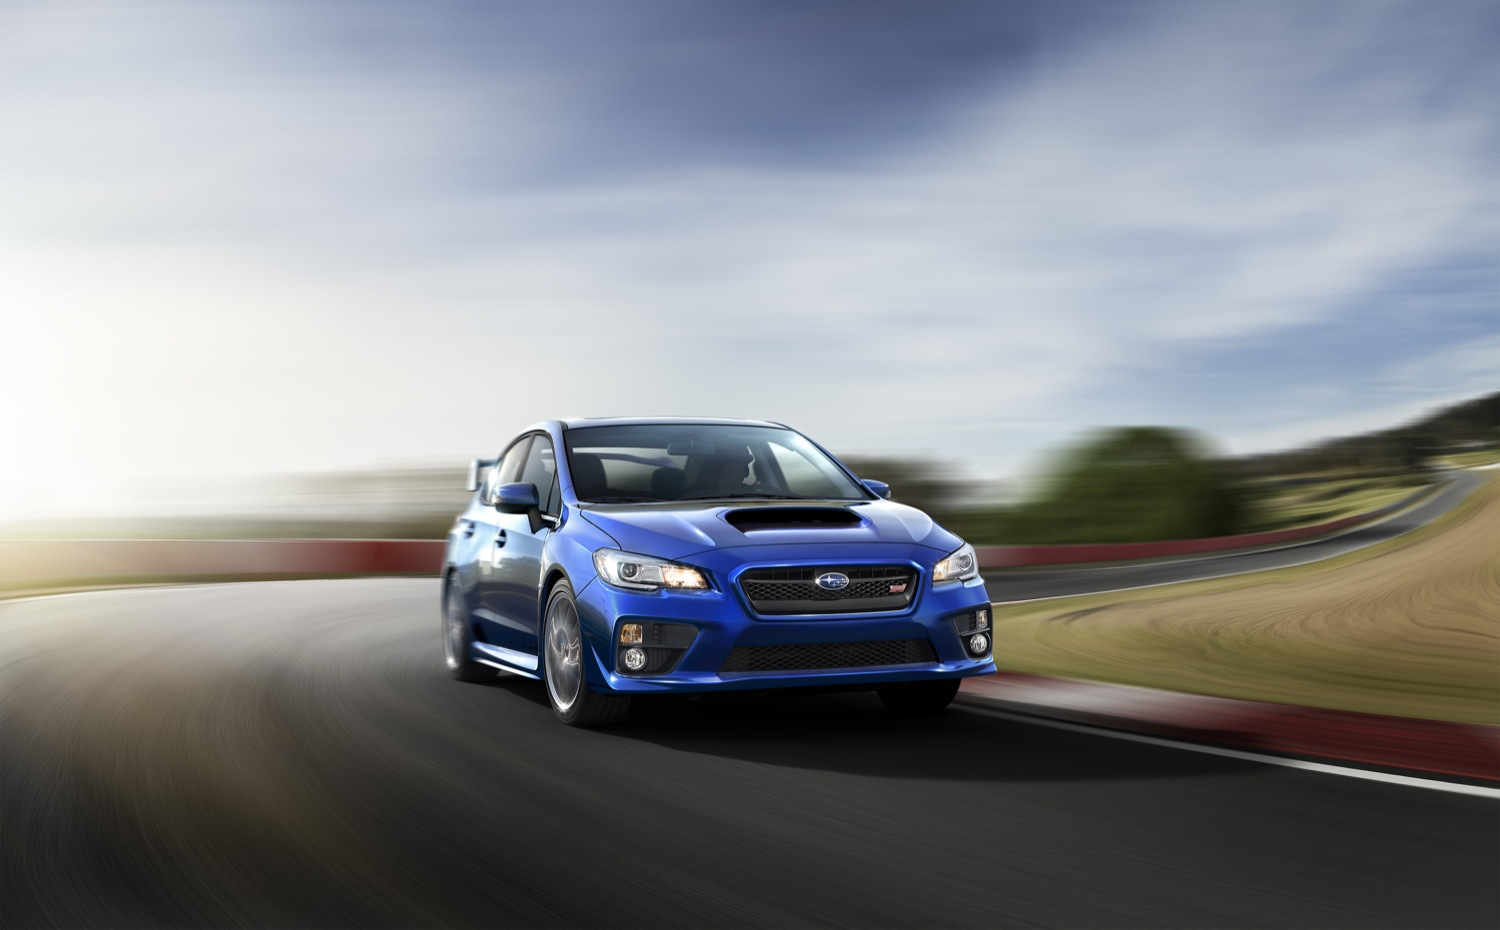 2015 subaru wrx sti unveiled in detroit. Black Bedroom Furniture Sets. Home Design Ideas